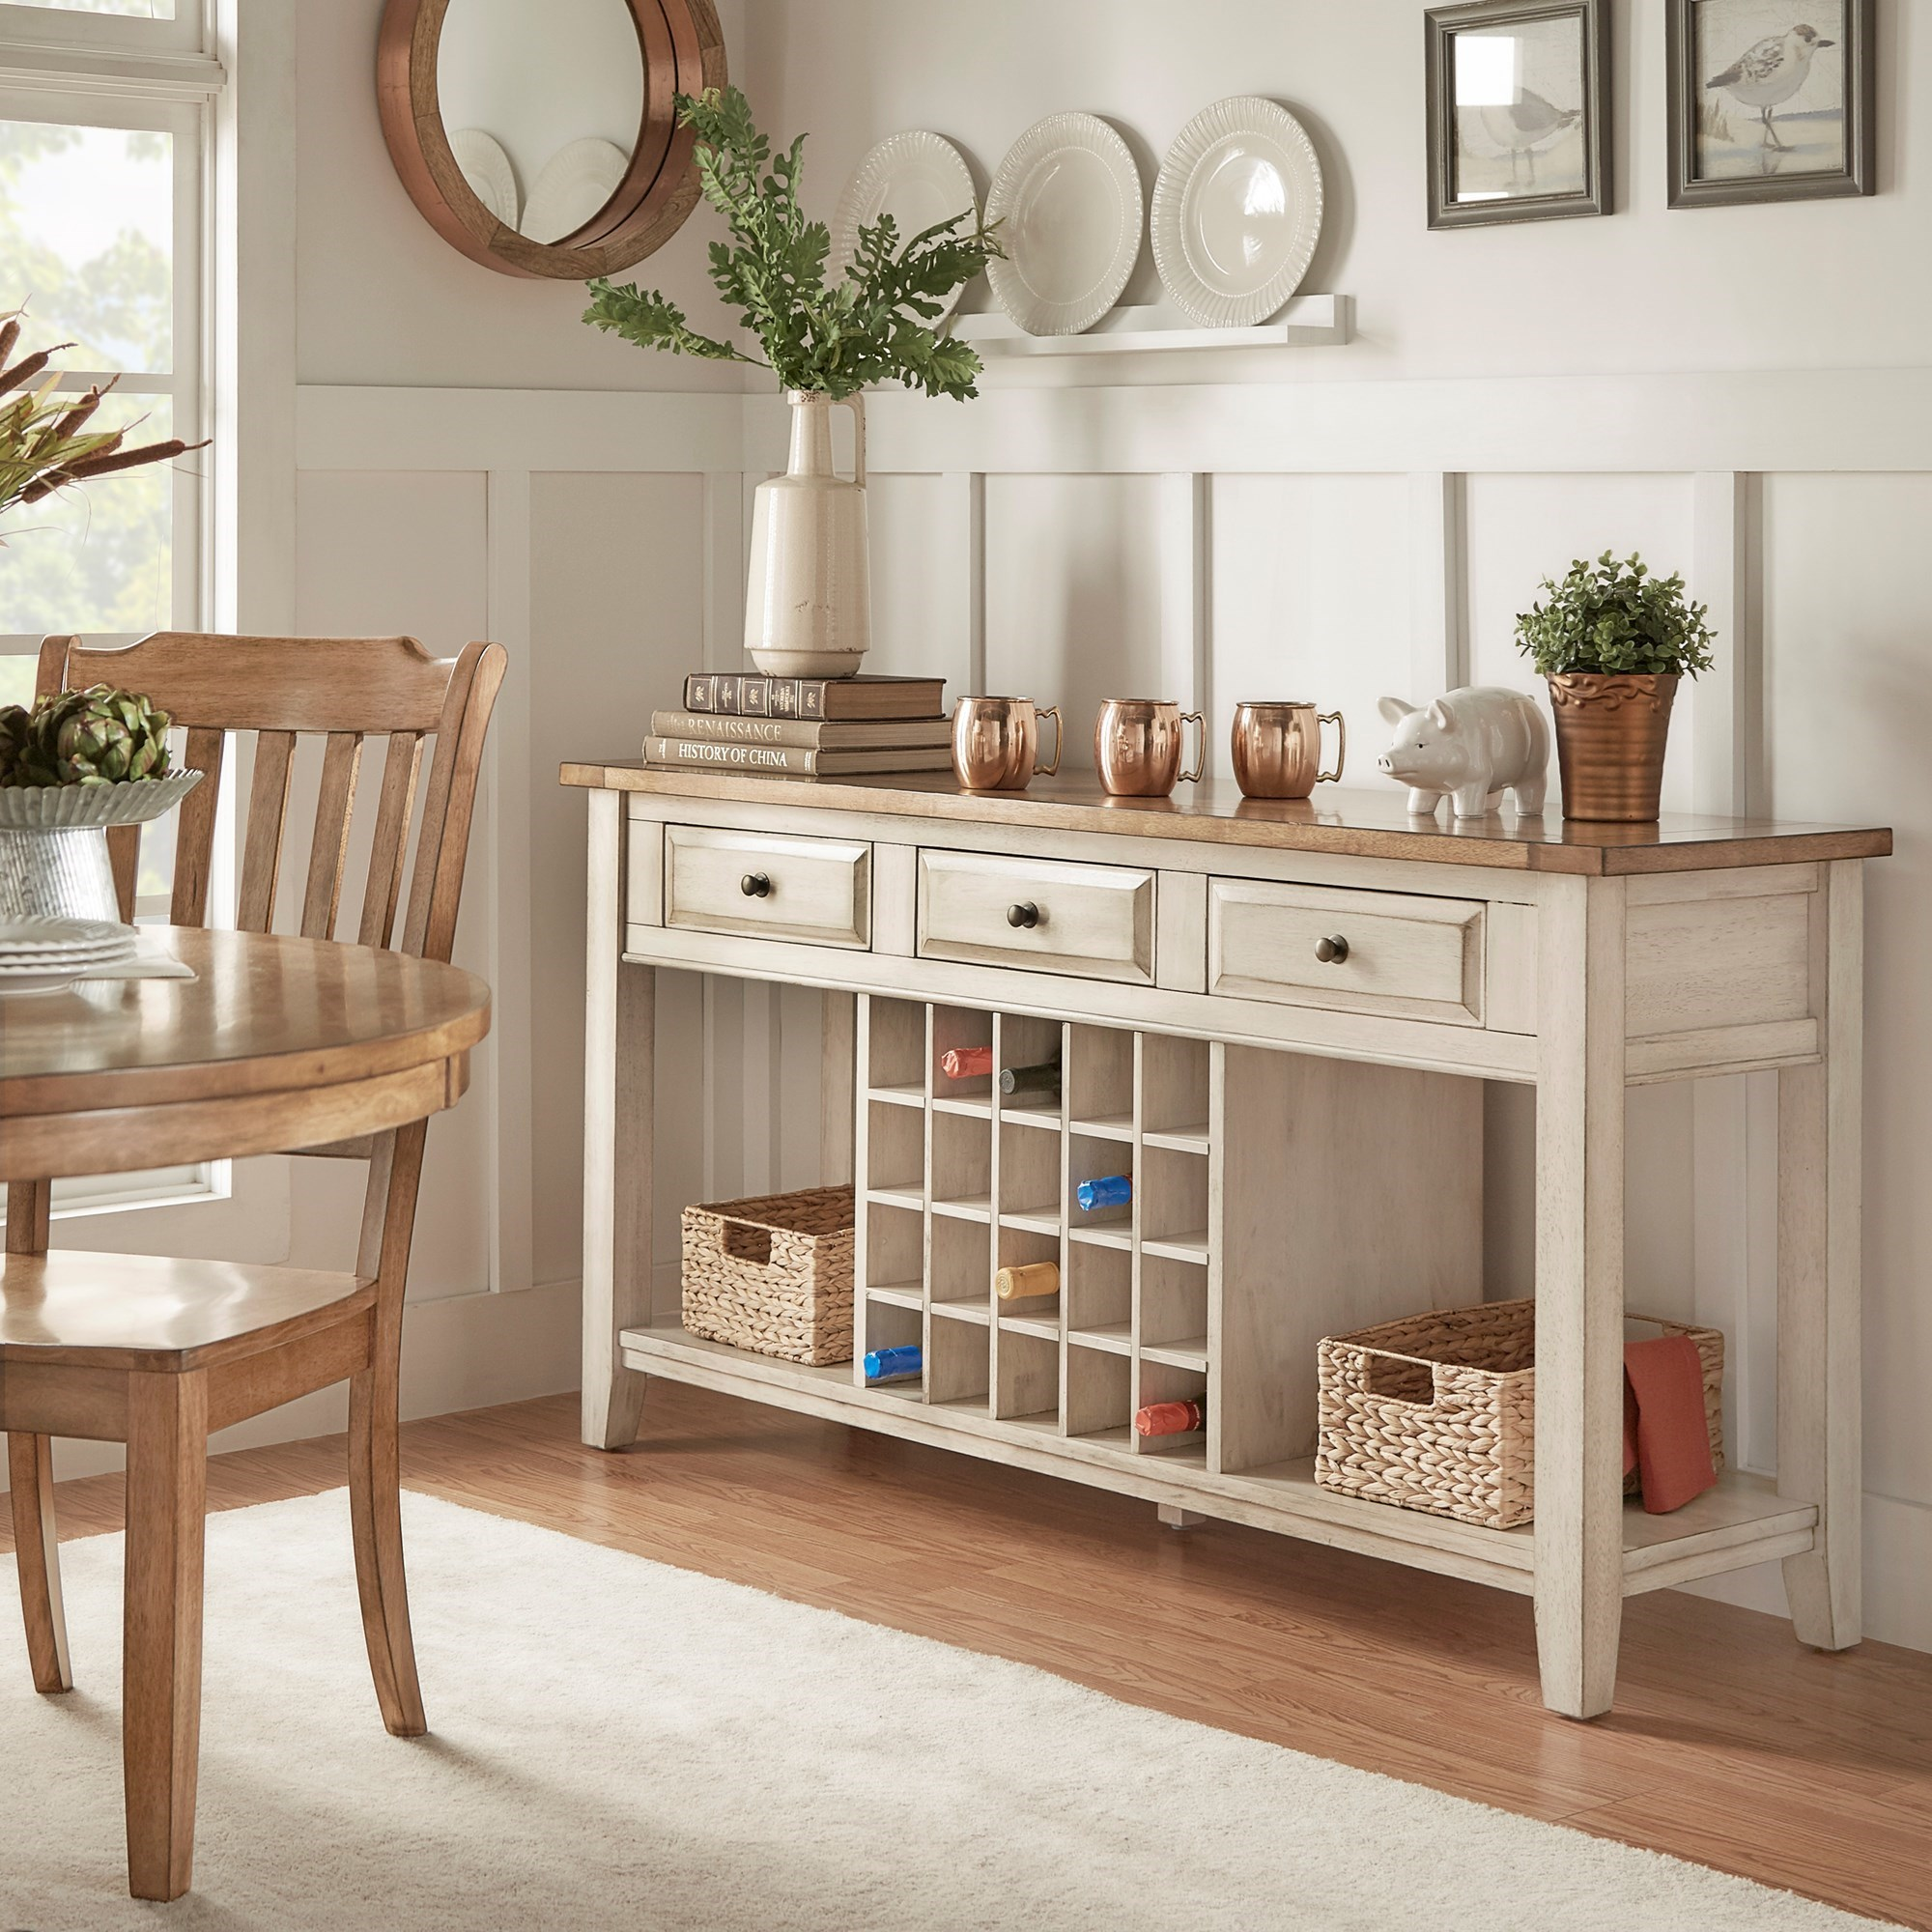 Homelegance 530 Dining Sideboard - Item Number: 530-40BWH